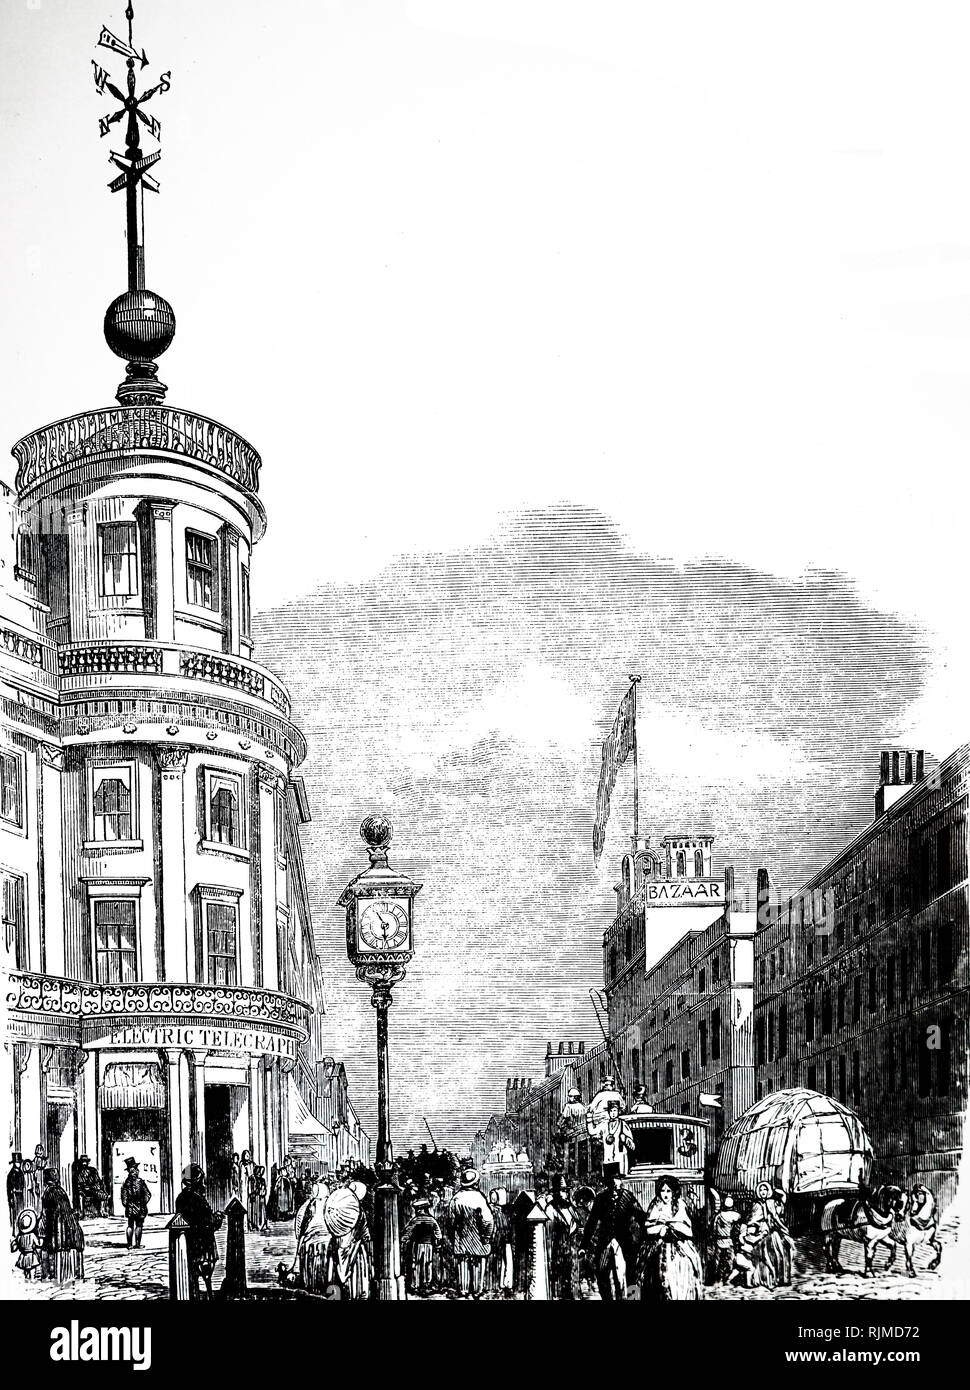 Illustration showing The time ball on the Electric Telegraph Co's Strand Office -this was connected to the time ball on the Royal Observatory, Greenwich, and was dropped at 1 o'clock each afternoon so that ships on the river could set their chronometers. 1852 - Stock Image